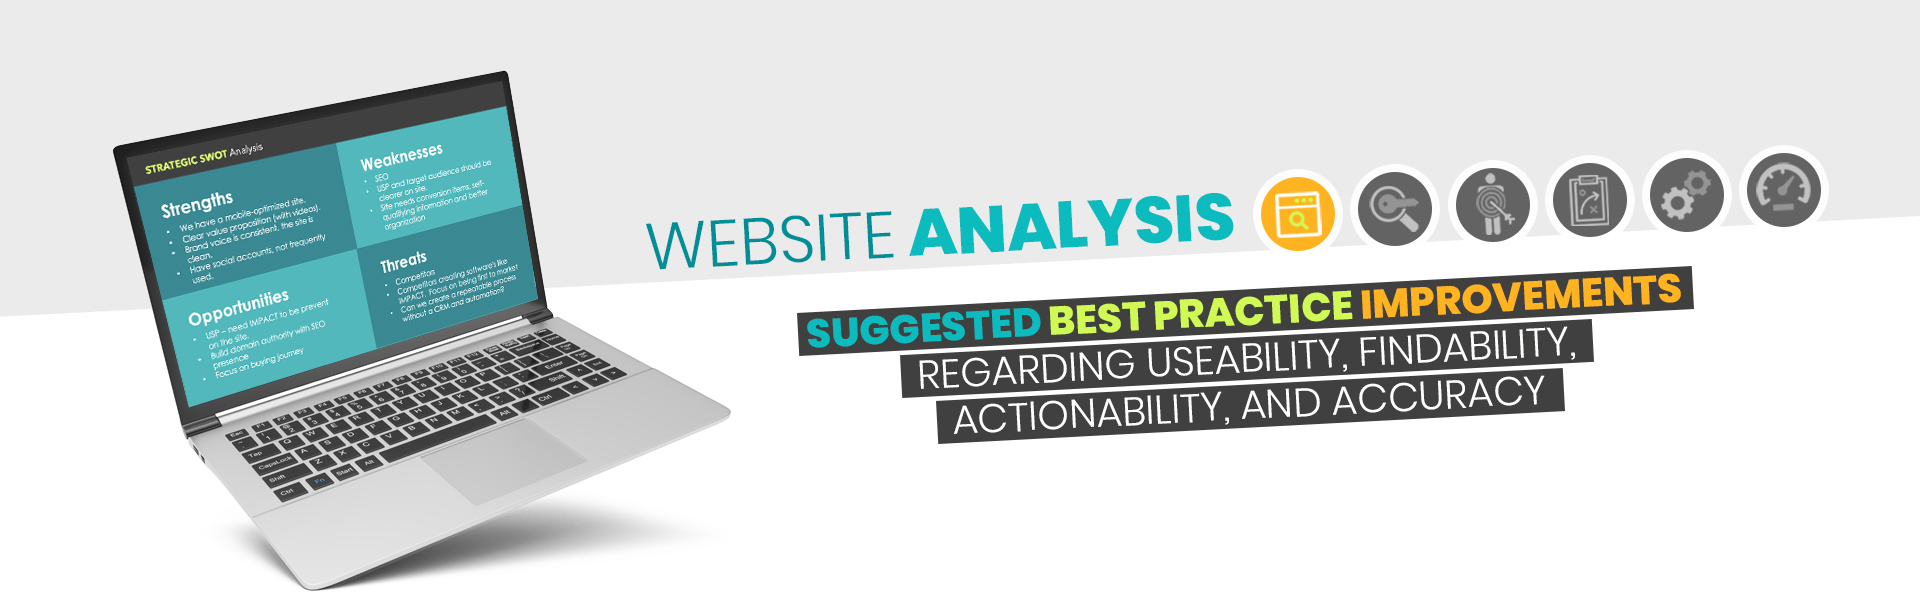 Website Analysis - Best Practices